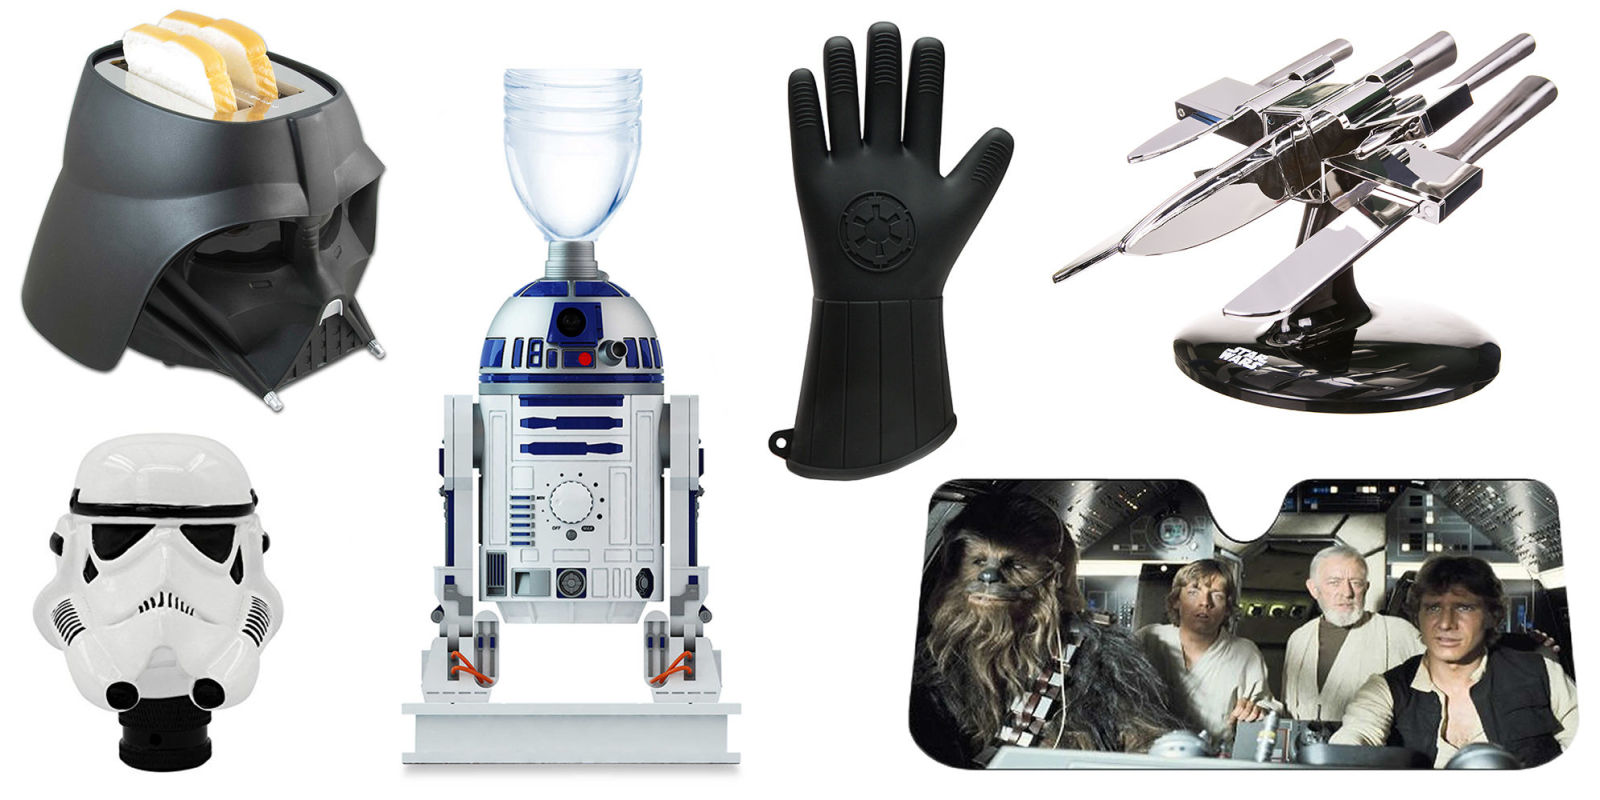 Star Wars Cooking Supplies Best Star Wars Stuff 11 Cool Star Wars Items And Decor